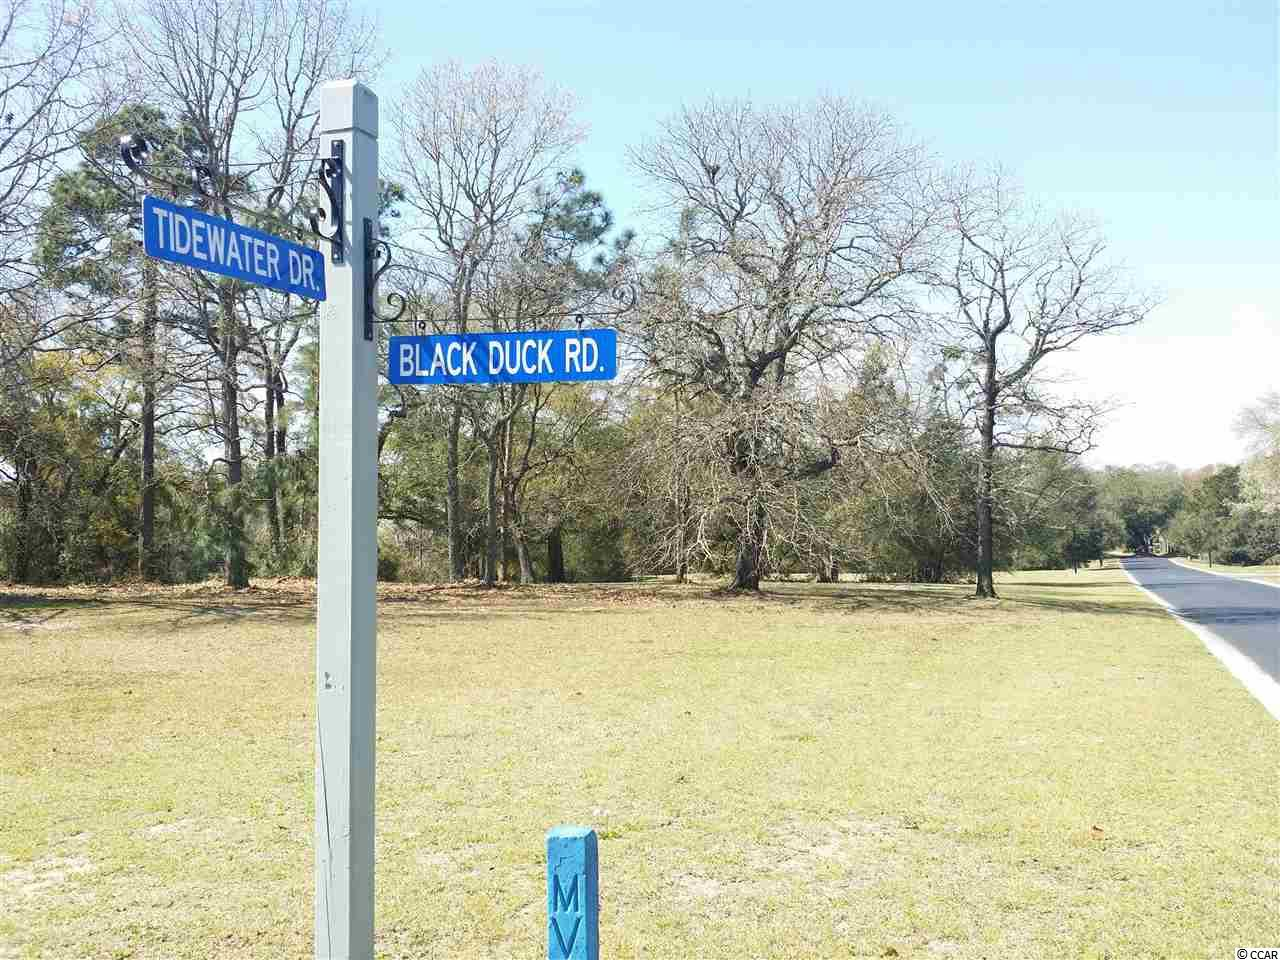 Are you looking for a place where you want to build your dream house? This beautiful lot is a lakefront property in a beautiful and prestigious community in Pawleys Island, South Carolina.  Come see!   This corner lot located in the gated Willbrook Plantation community. This beautiful place offers great amenities and has a private beach access to Atlantic Ocean for exclusives members through The Litchfield at the Sea. The amenities include swimming pool, Clubhouse, the Litchfield golf club, tennis court are the amenities you can enjoy right there in you neighborhood. Willbrook Plantation is minutes away from Brookgreen Gardens, the Intracoastal waterway, shopping, fine dining, Huntington Beach state park and major Hwy.  Come and build your dream home in this prestigious  community  and enjoy all the beauty that Willbrook has to offer!